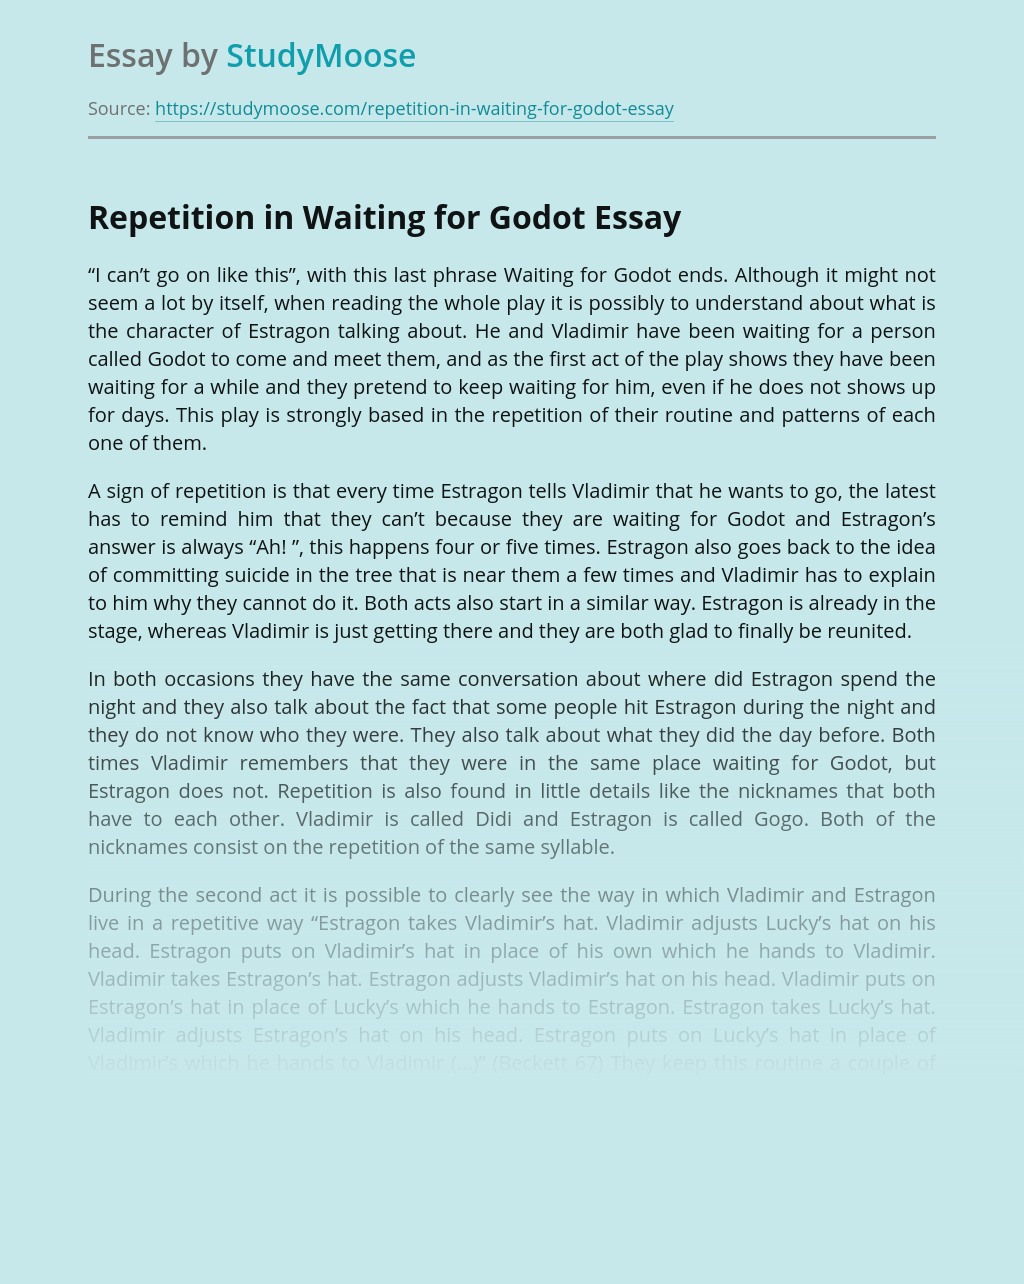 Repetition in Waiting for Godot